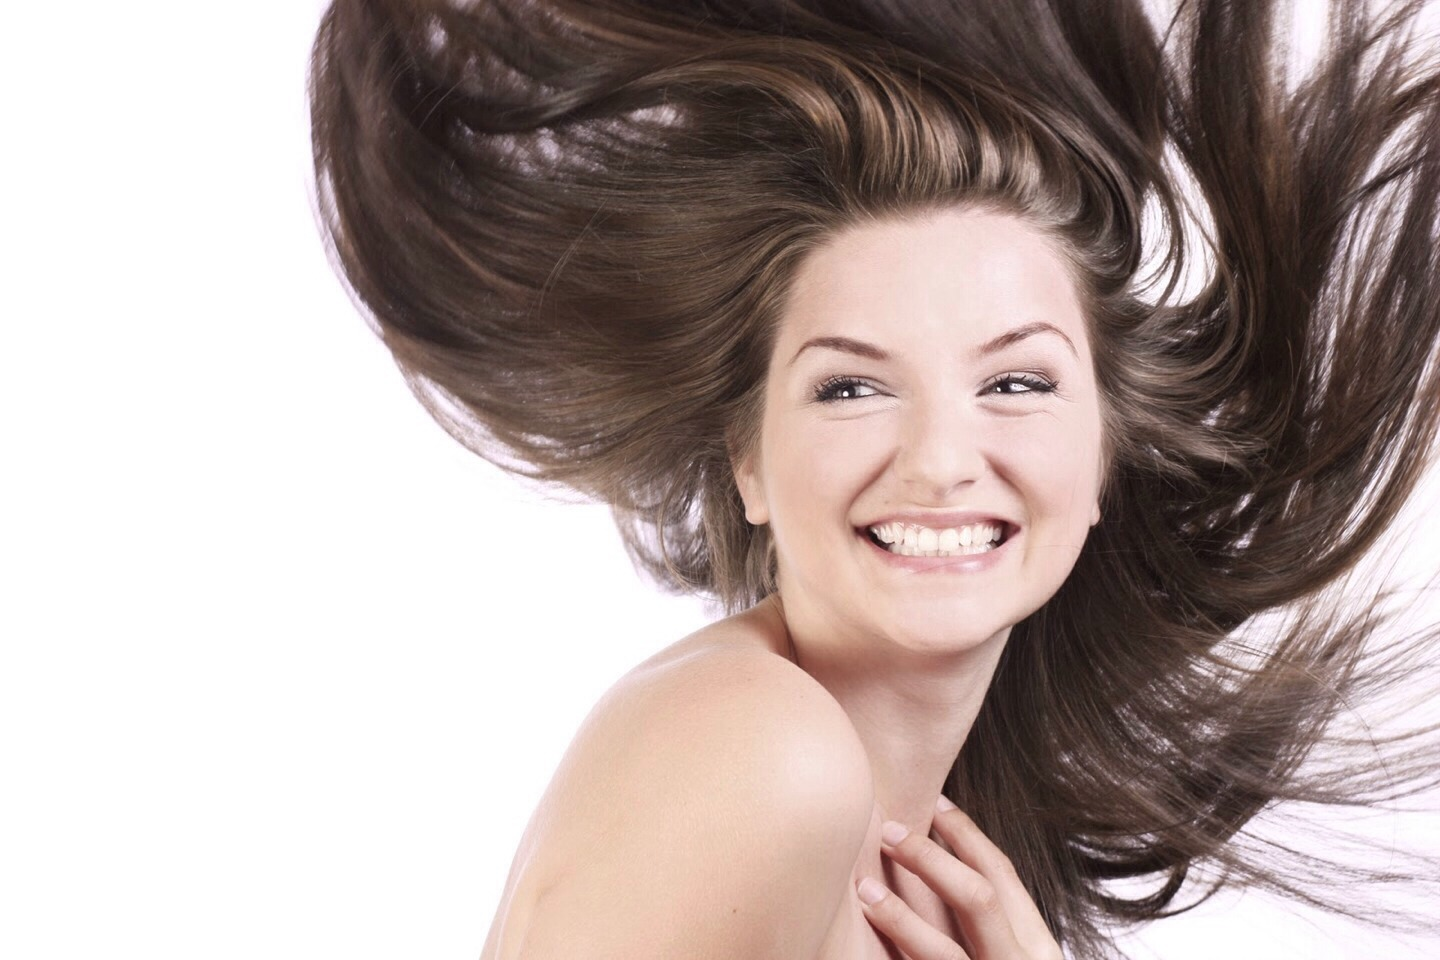 Tip #4: When showering, take your conditioner (add olive oil if you want), spread it throughout your hair and leave it in for a few minutes. Then, condition again but only leave it in for thirty seconds or so.